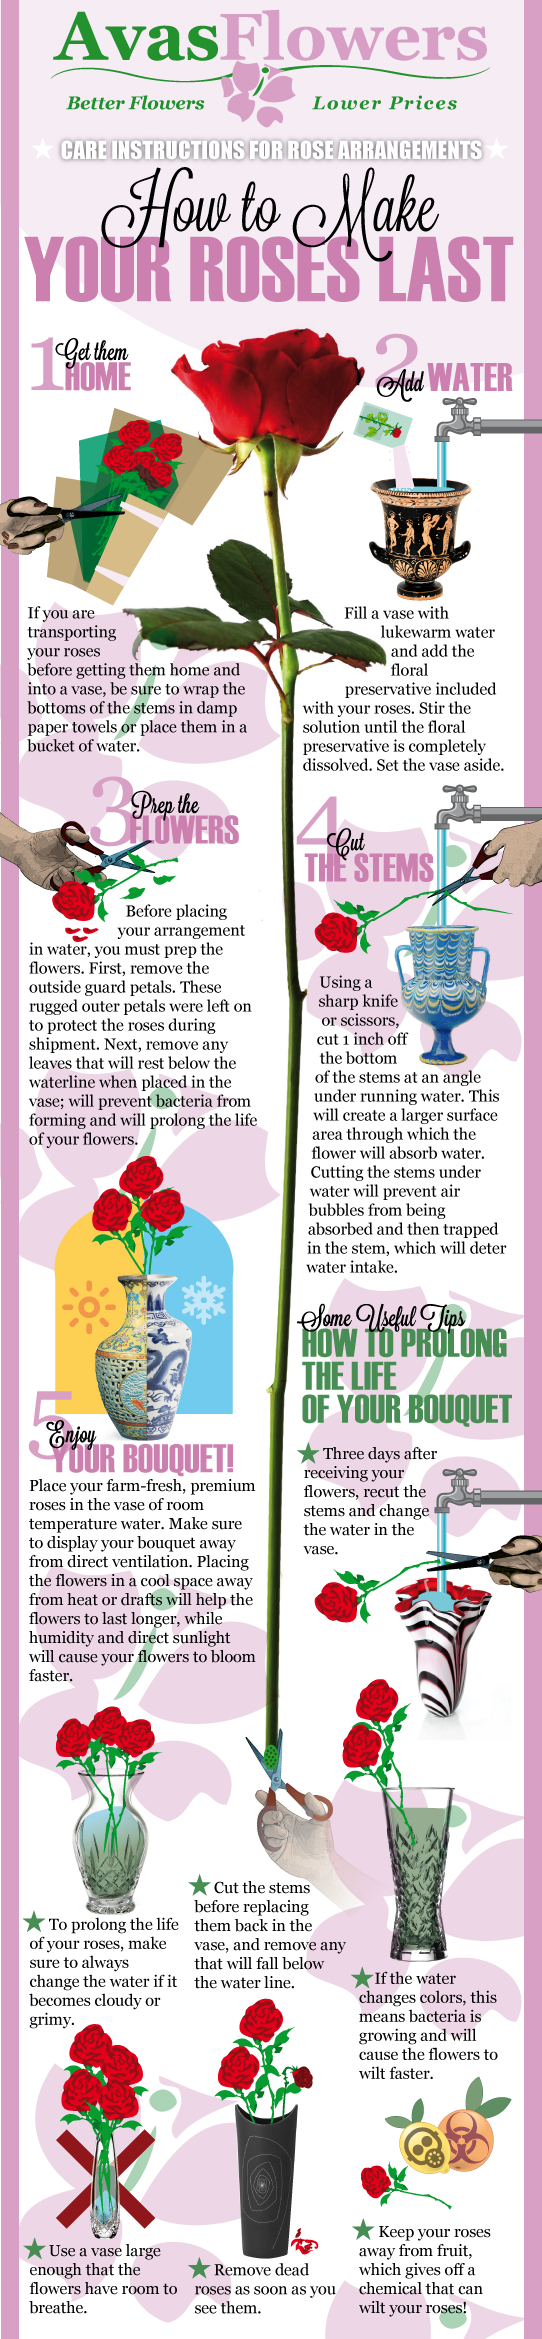 How to Make Your Roses Last